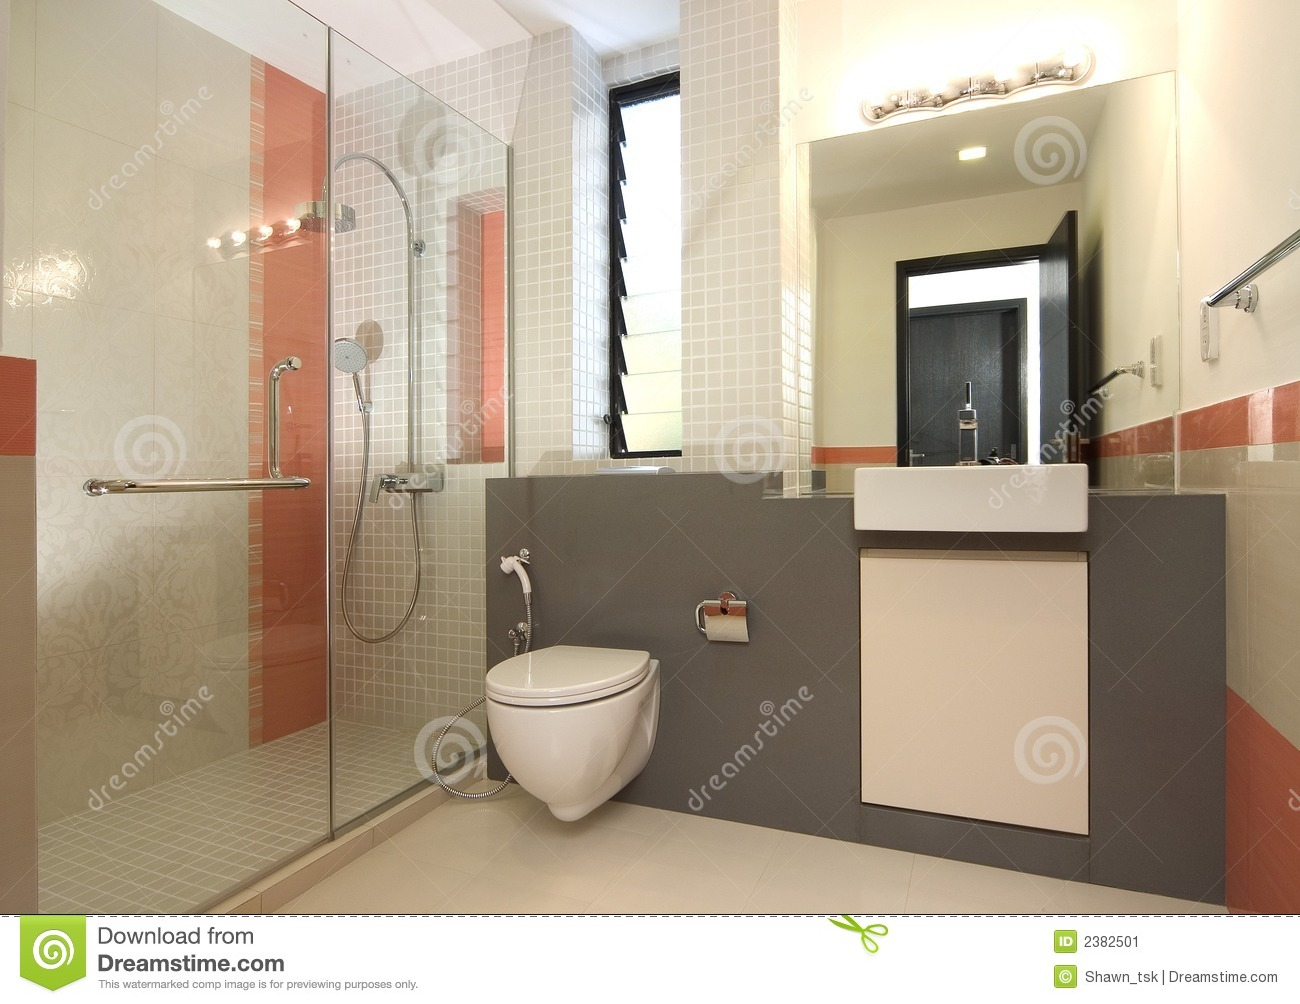 Interior design bathroom stock image image of light for Bathroom interior design pakistan